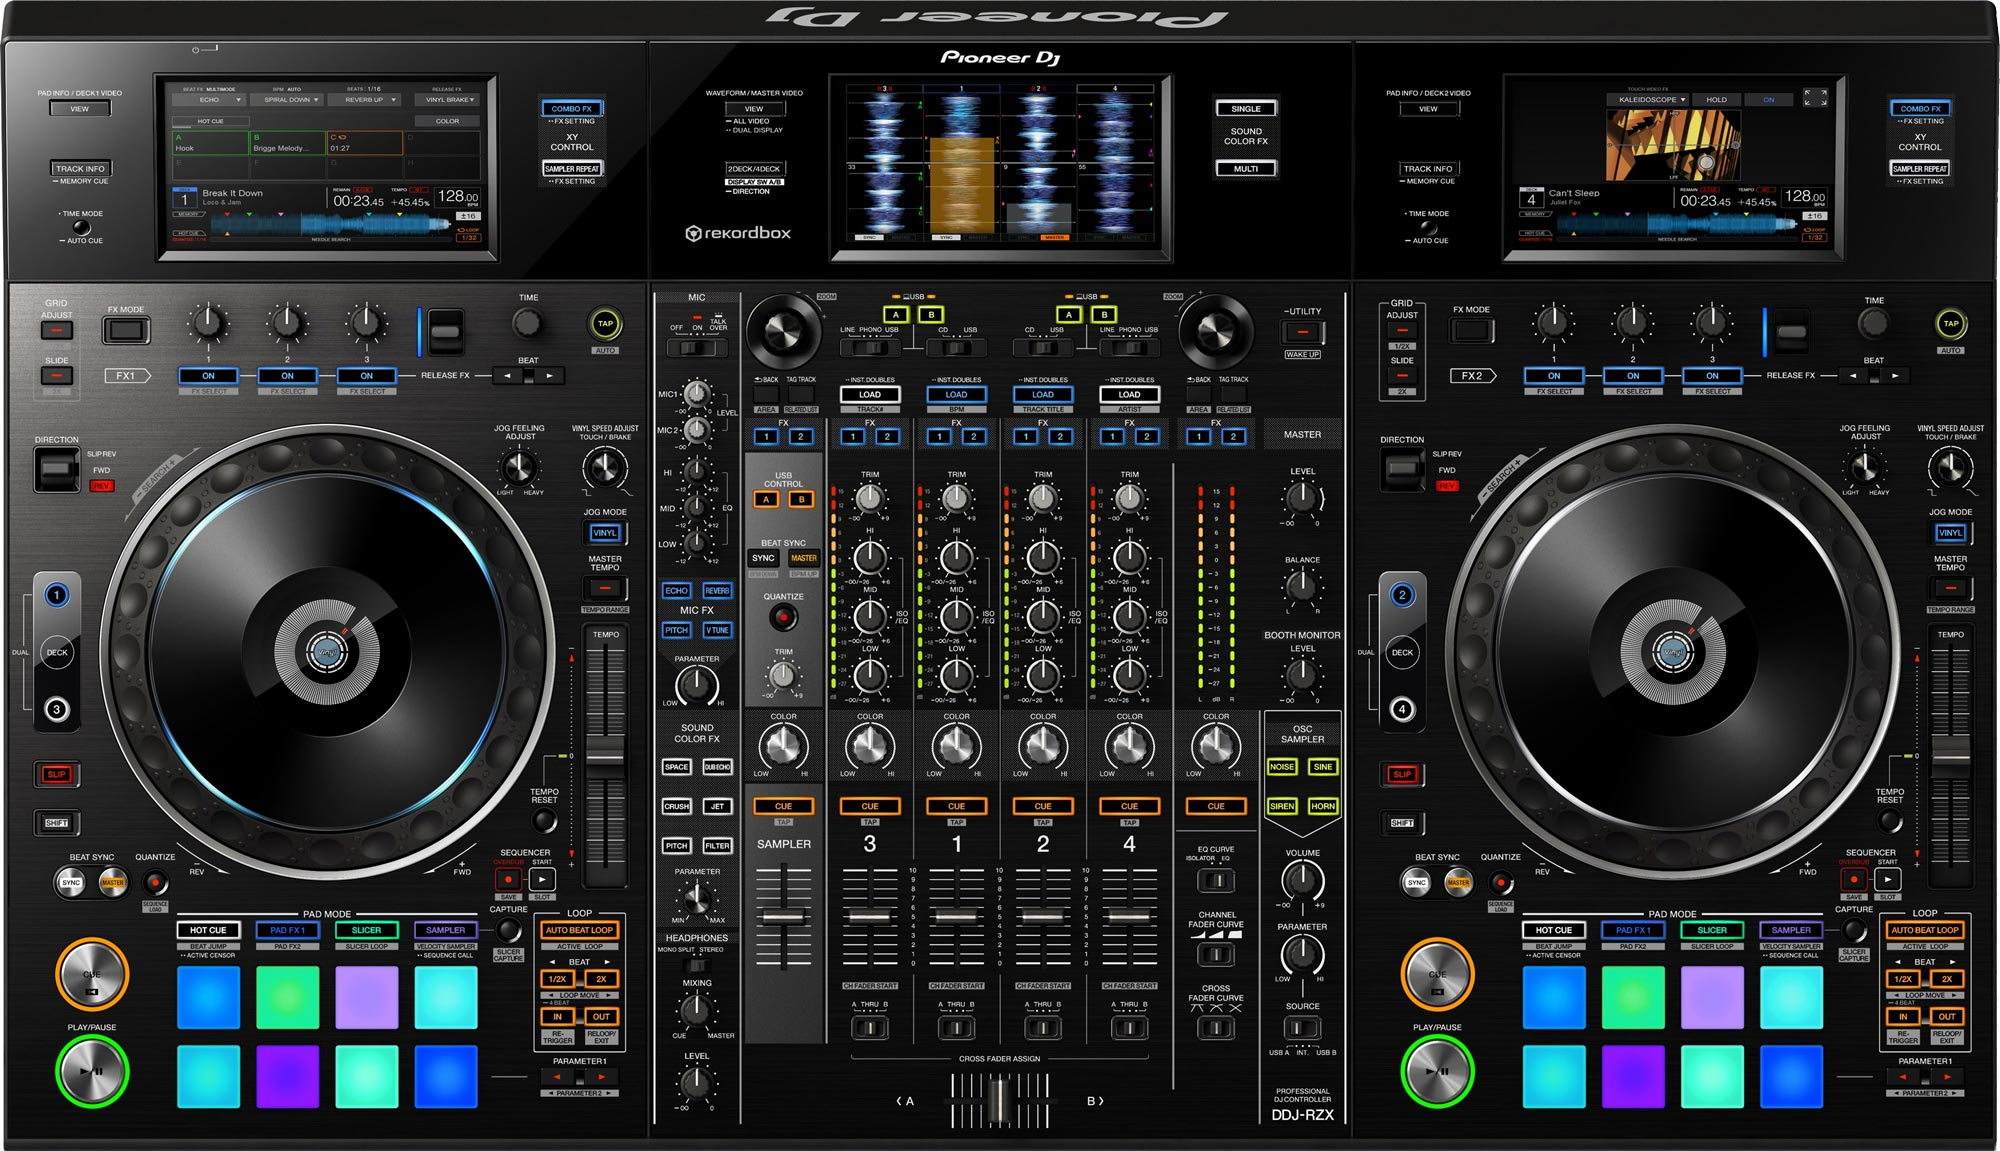 The Pioneer DDJ-RZX is a sight to behold.